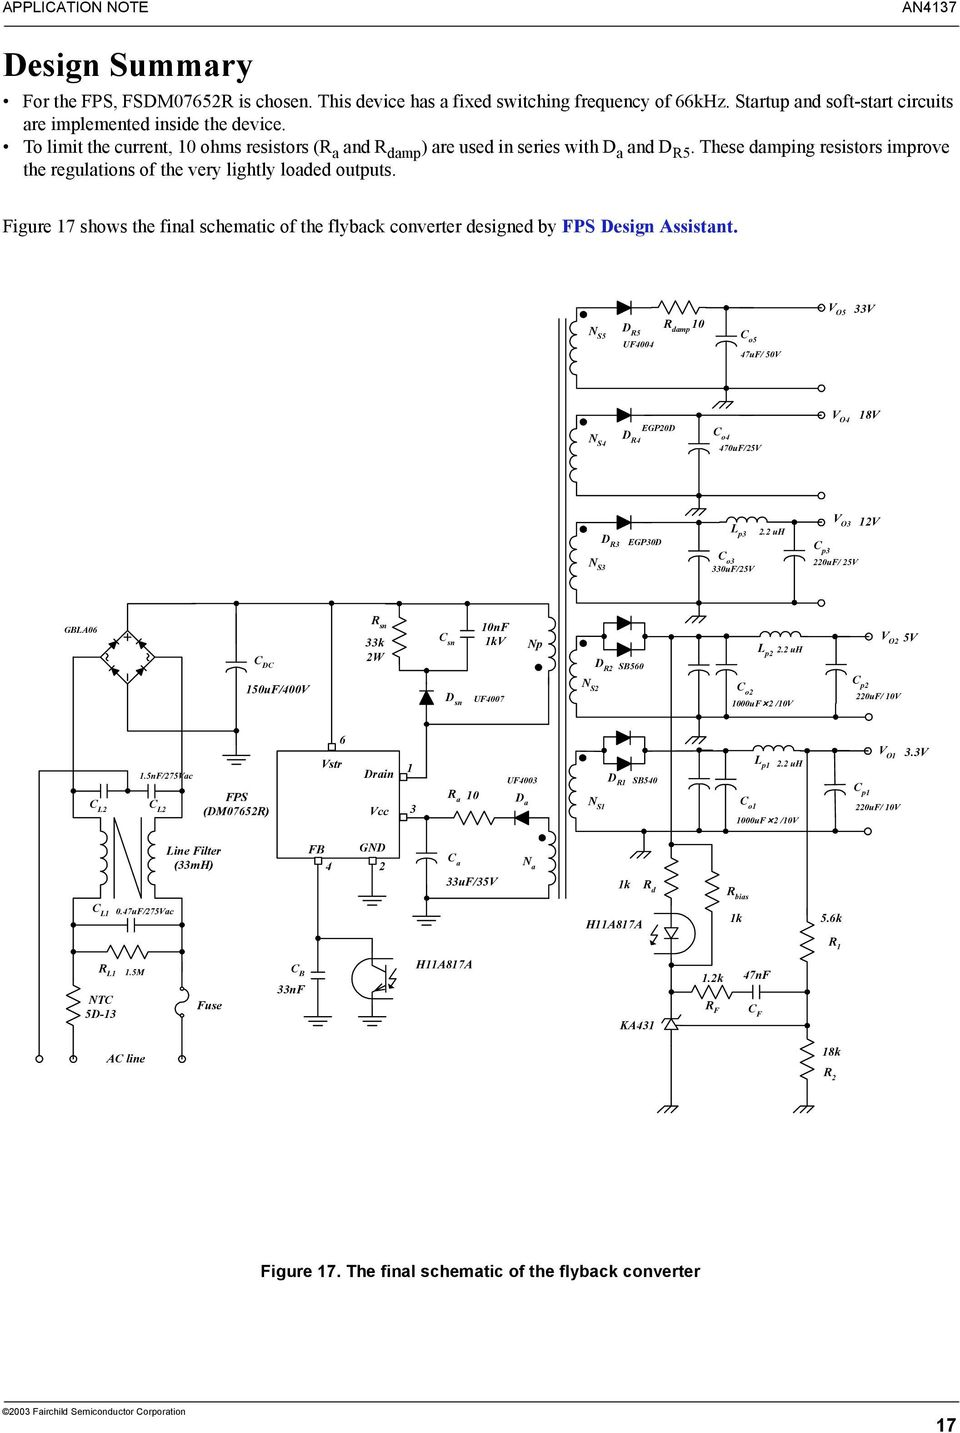 Figure 17 shows the final schematic of the flyback converter designed by FPS Design Assistant.